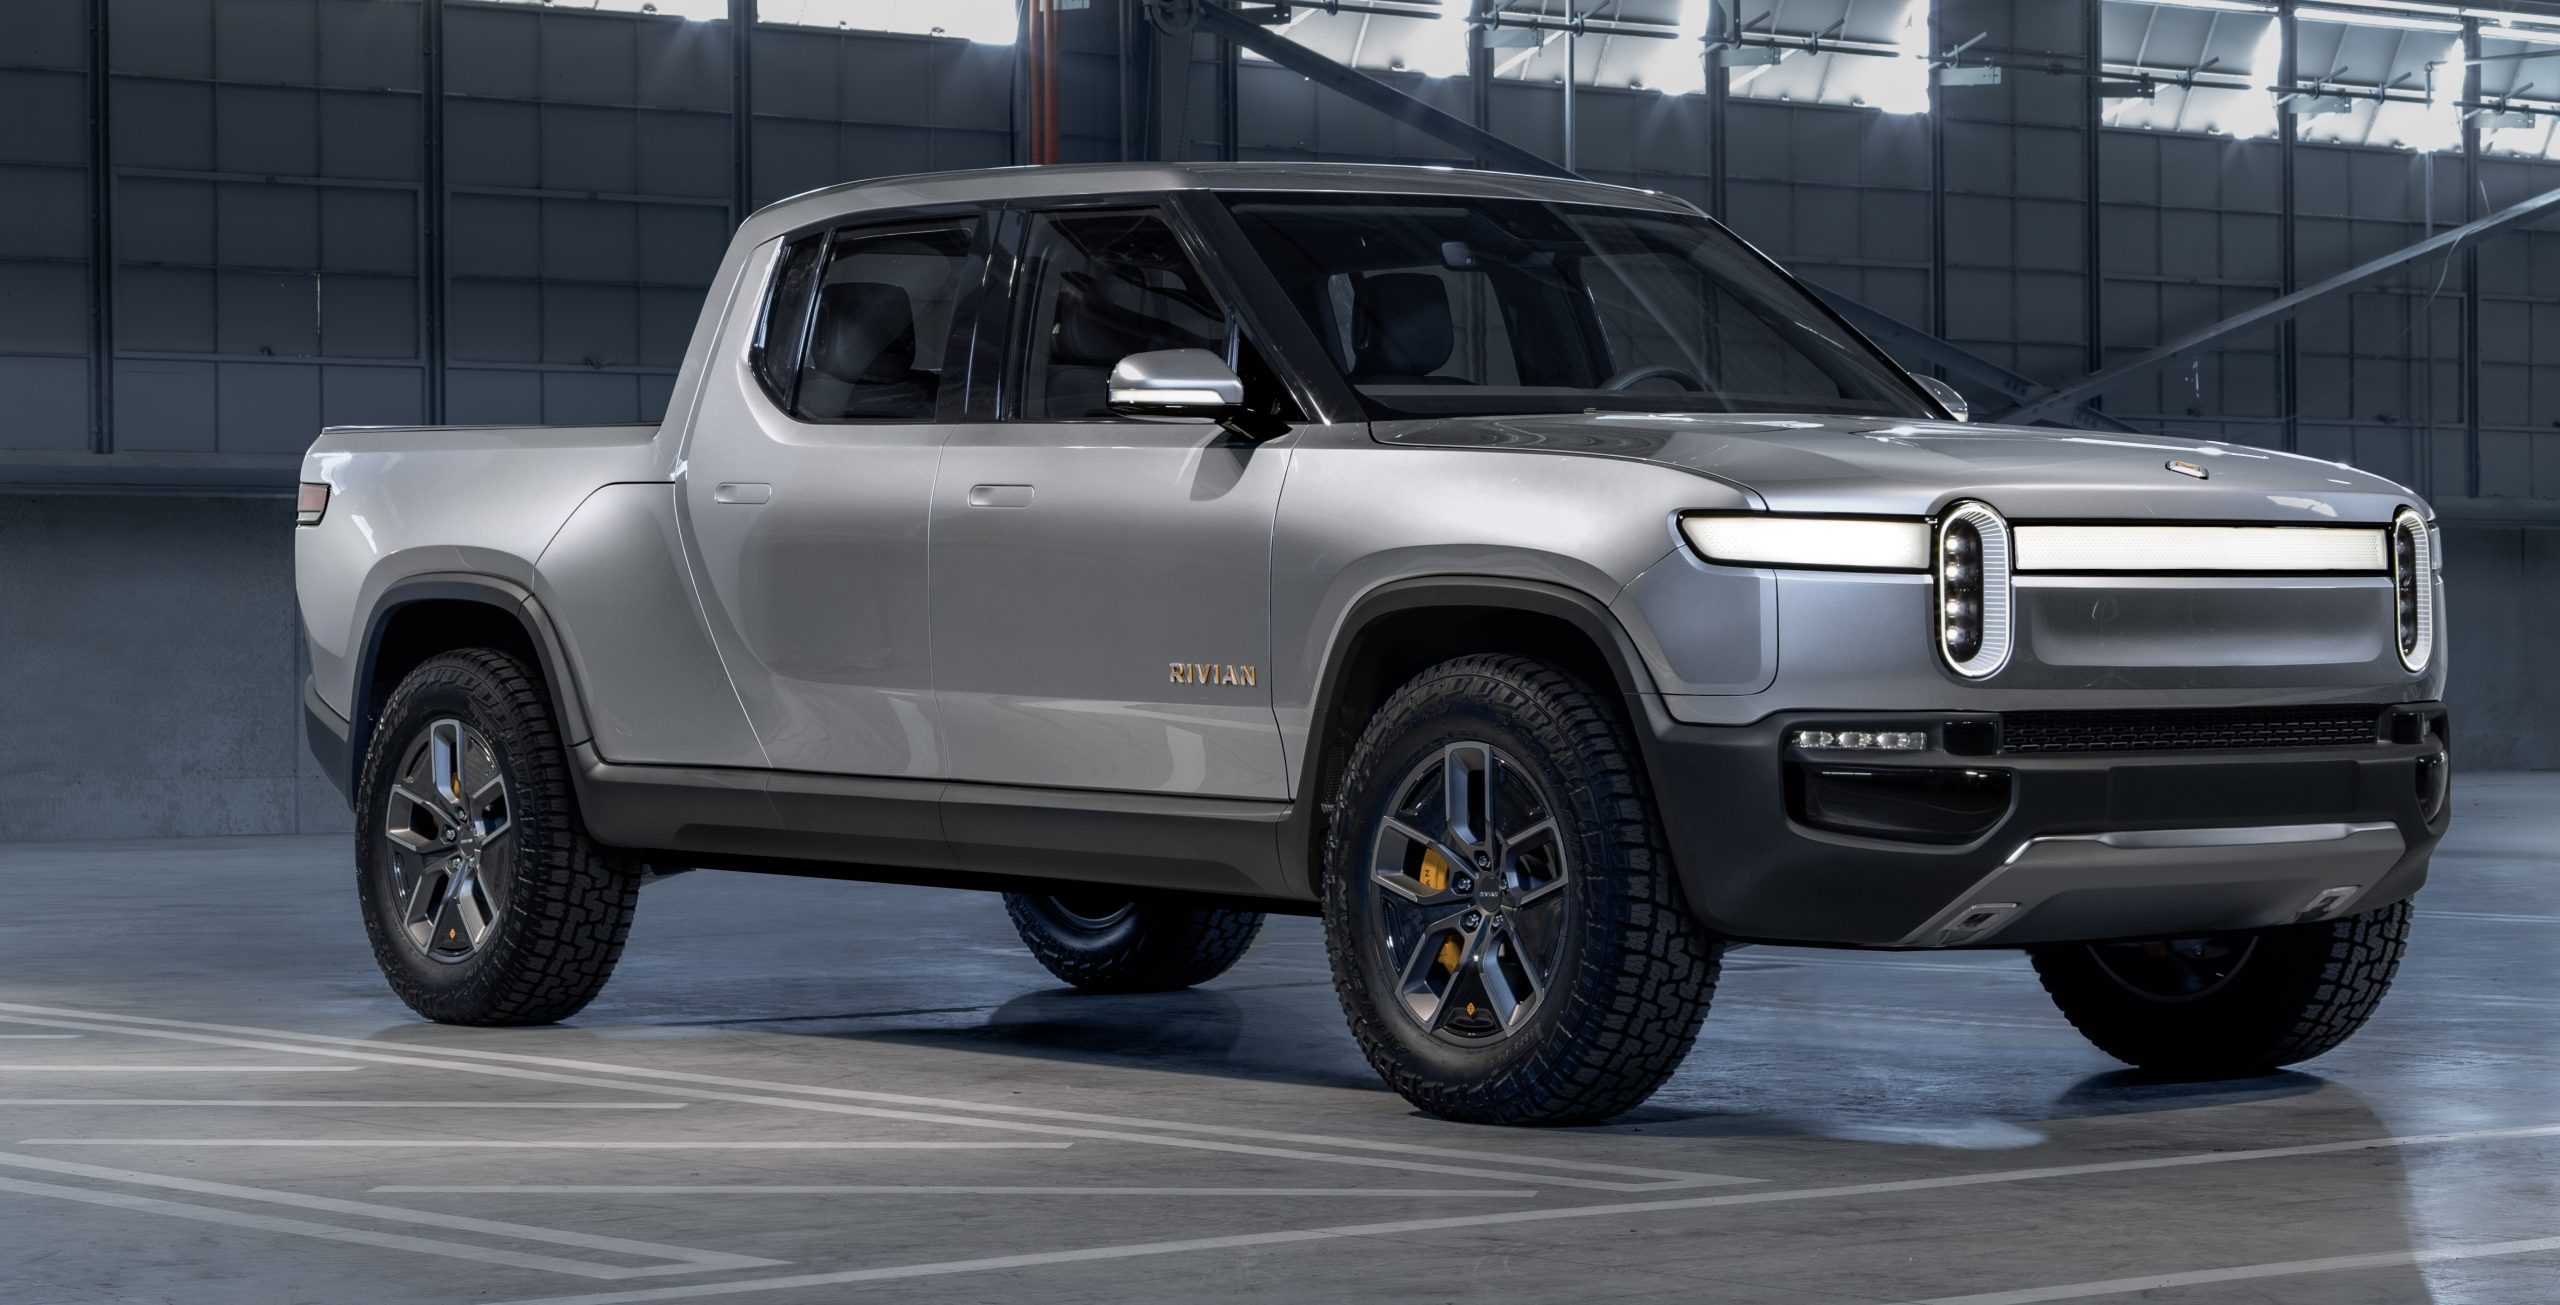 You are currently viewing Rivian Electric Trucks are Going to use Cells From Samsung SDI